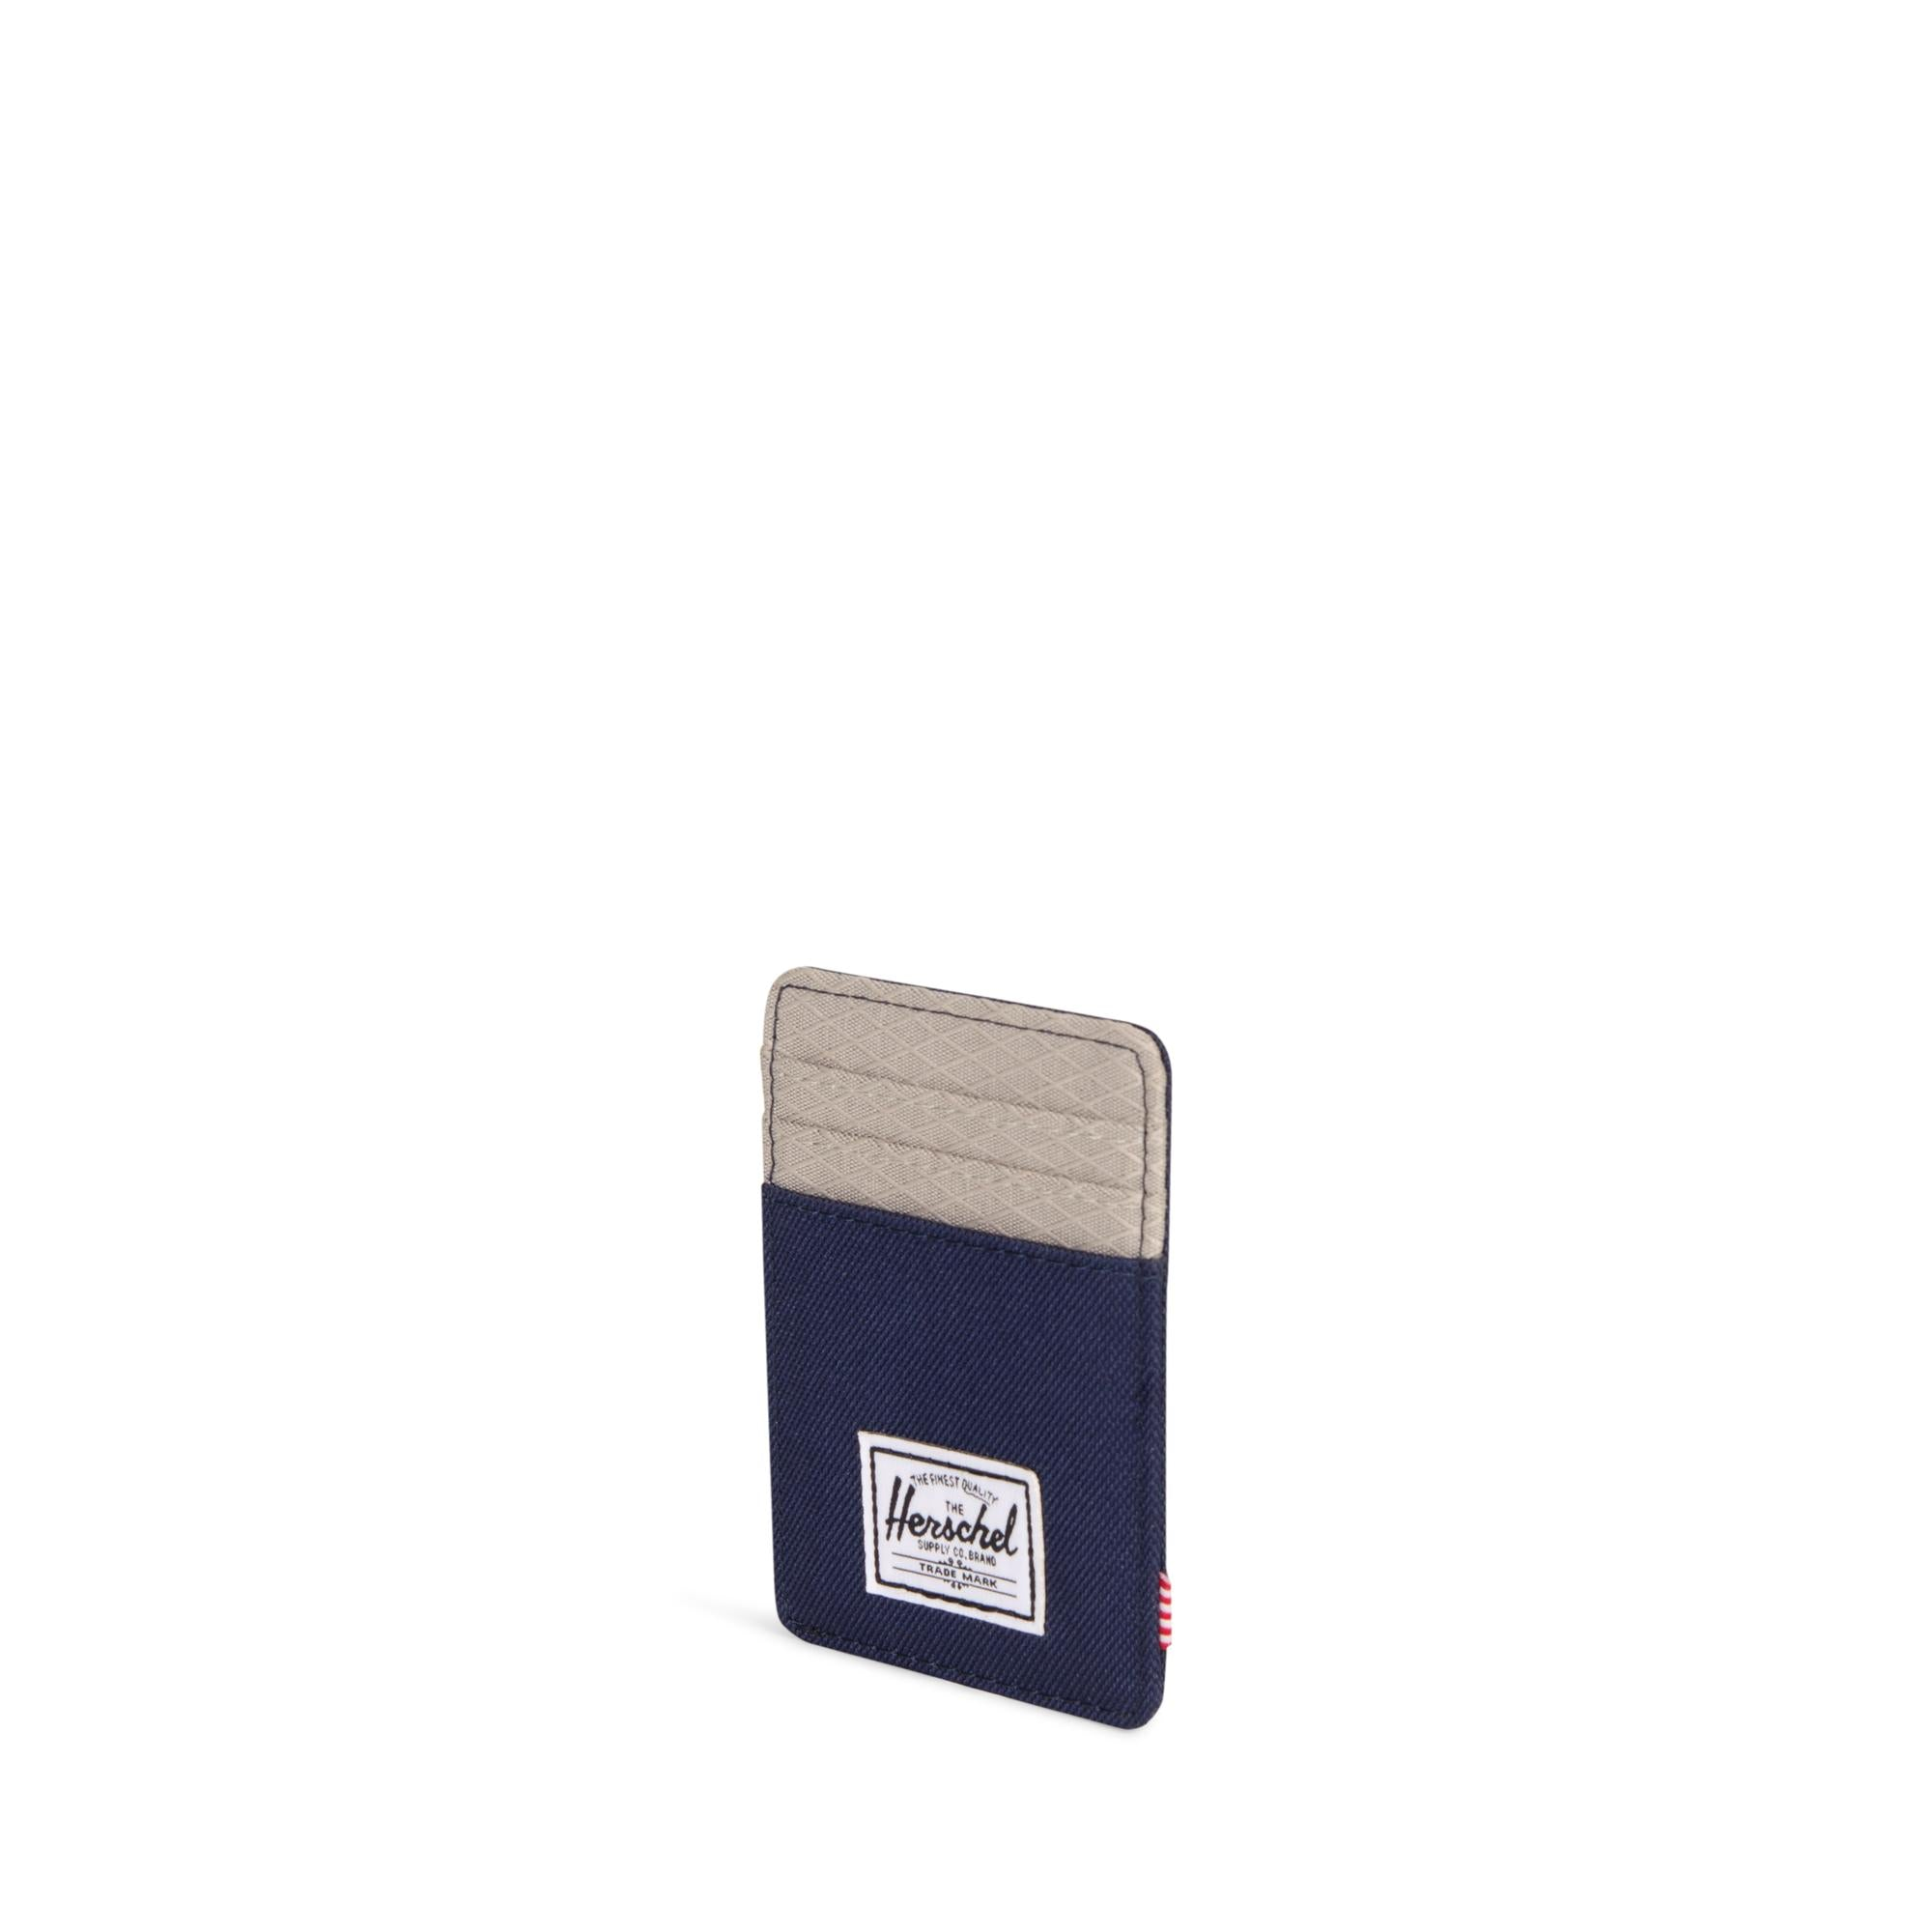 c7f58d75f30 Herschel Supply Co Raven Wallet in Navy Pearl - MAKE Collectives